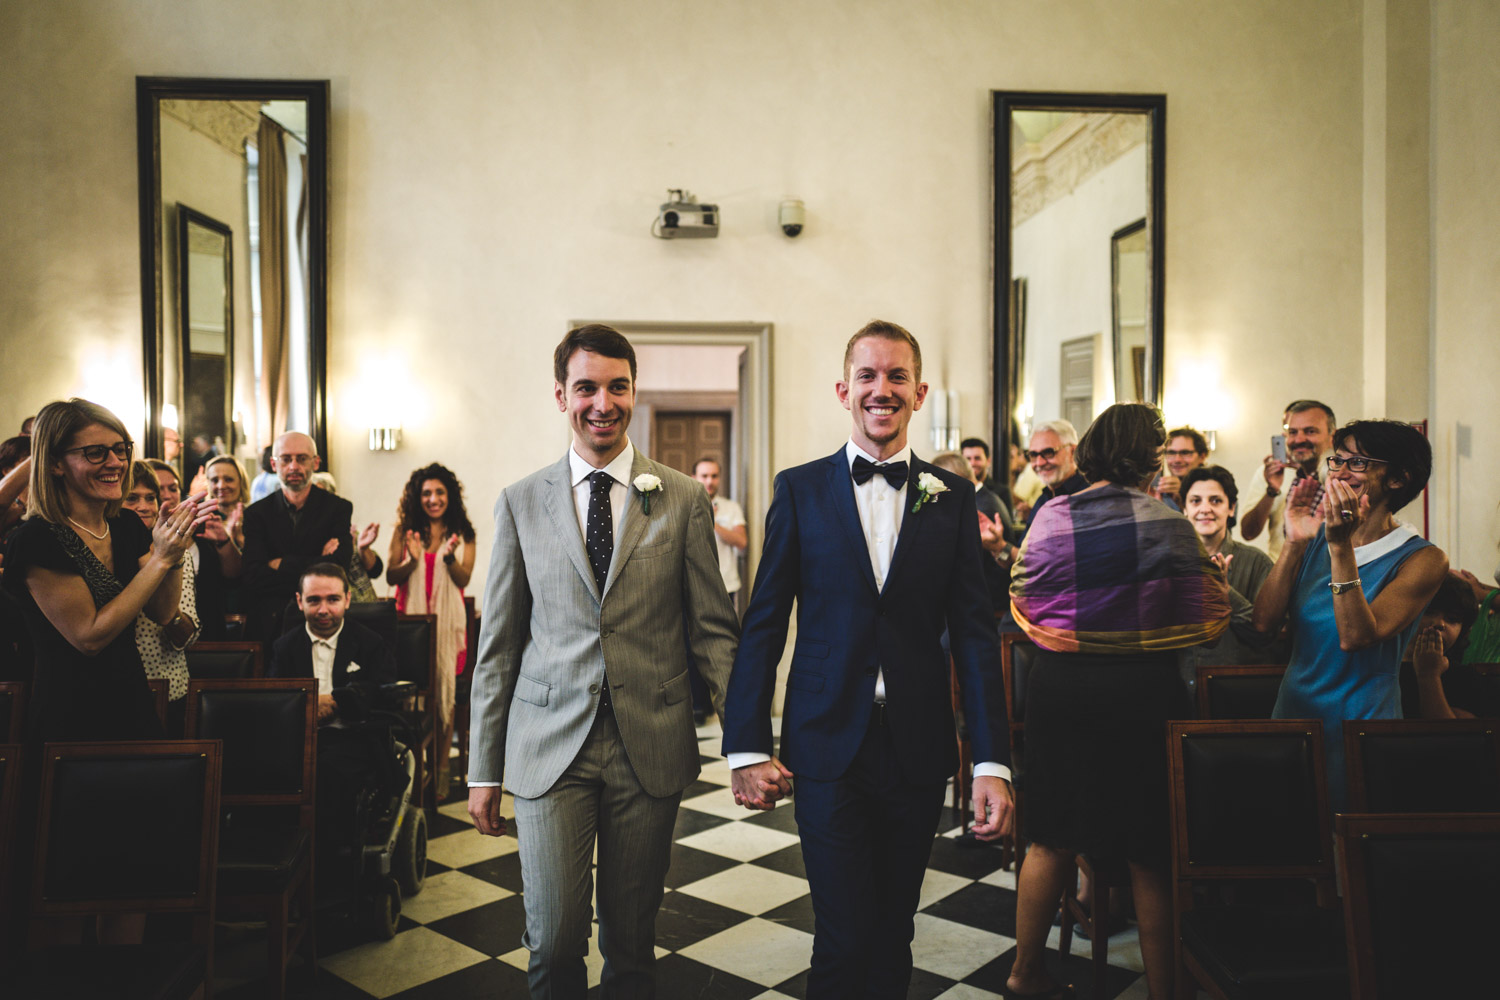 monica-sica_photography_trattoria-revelli_wedding-gay_torino_day_20